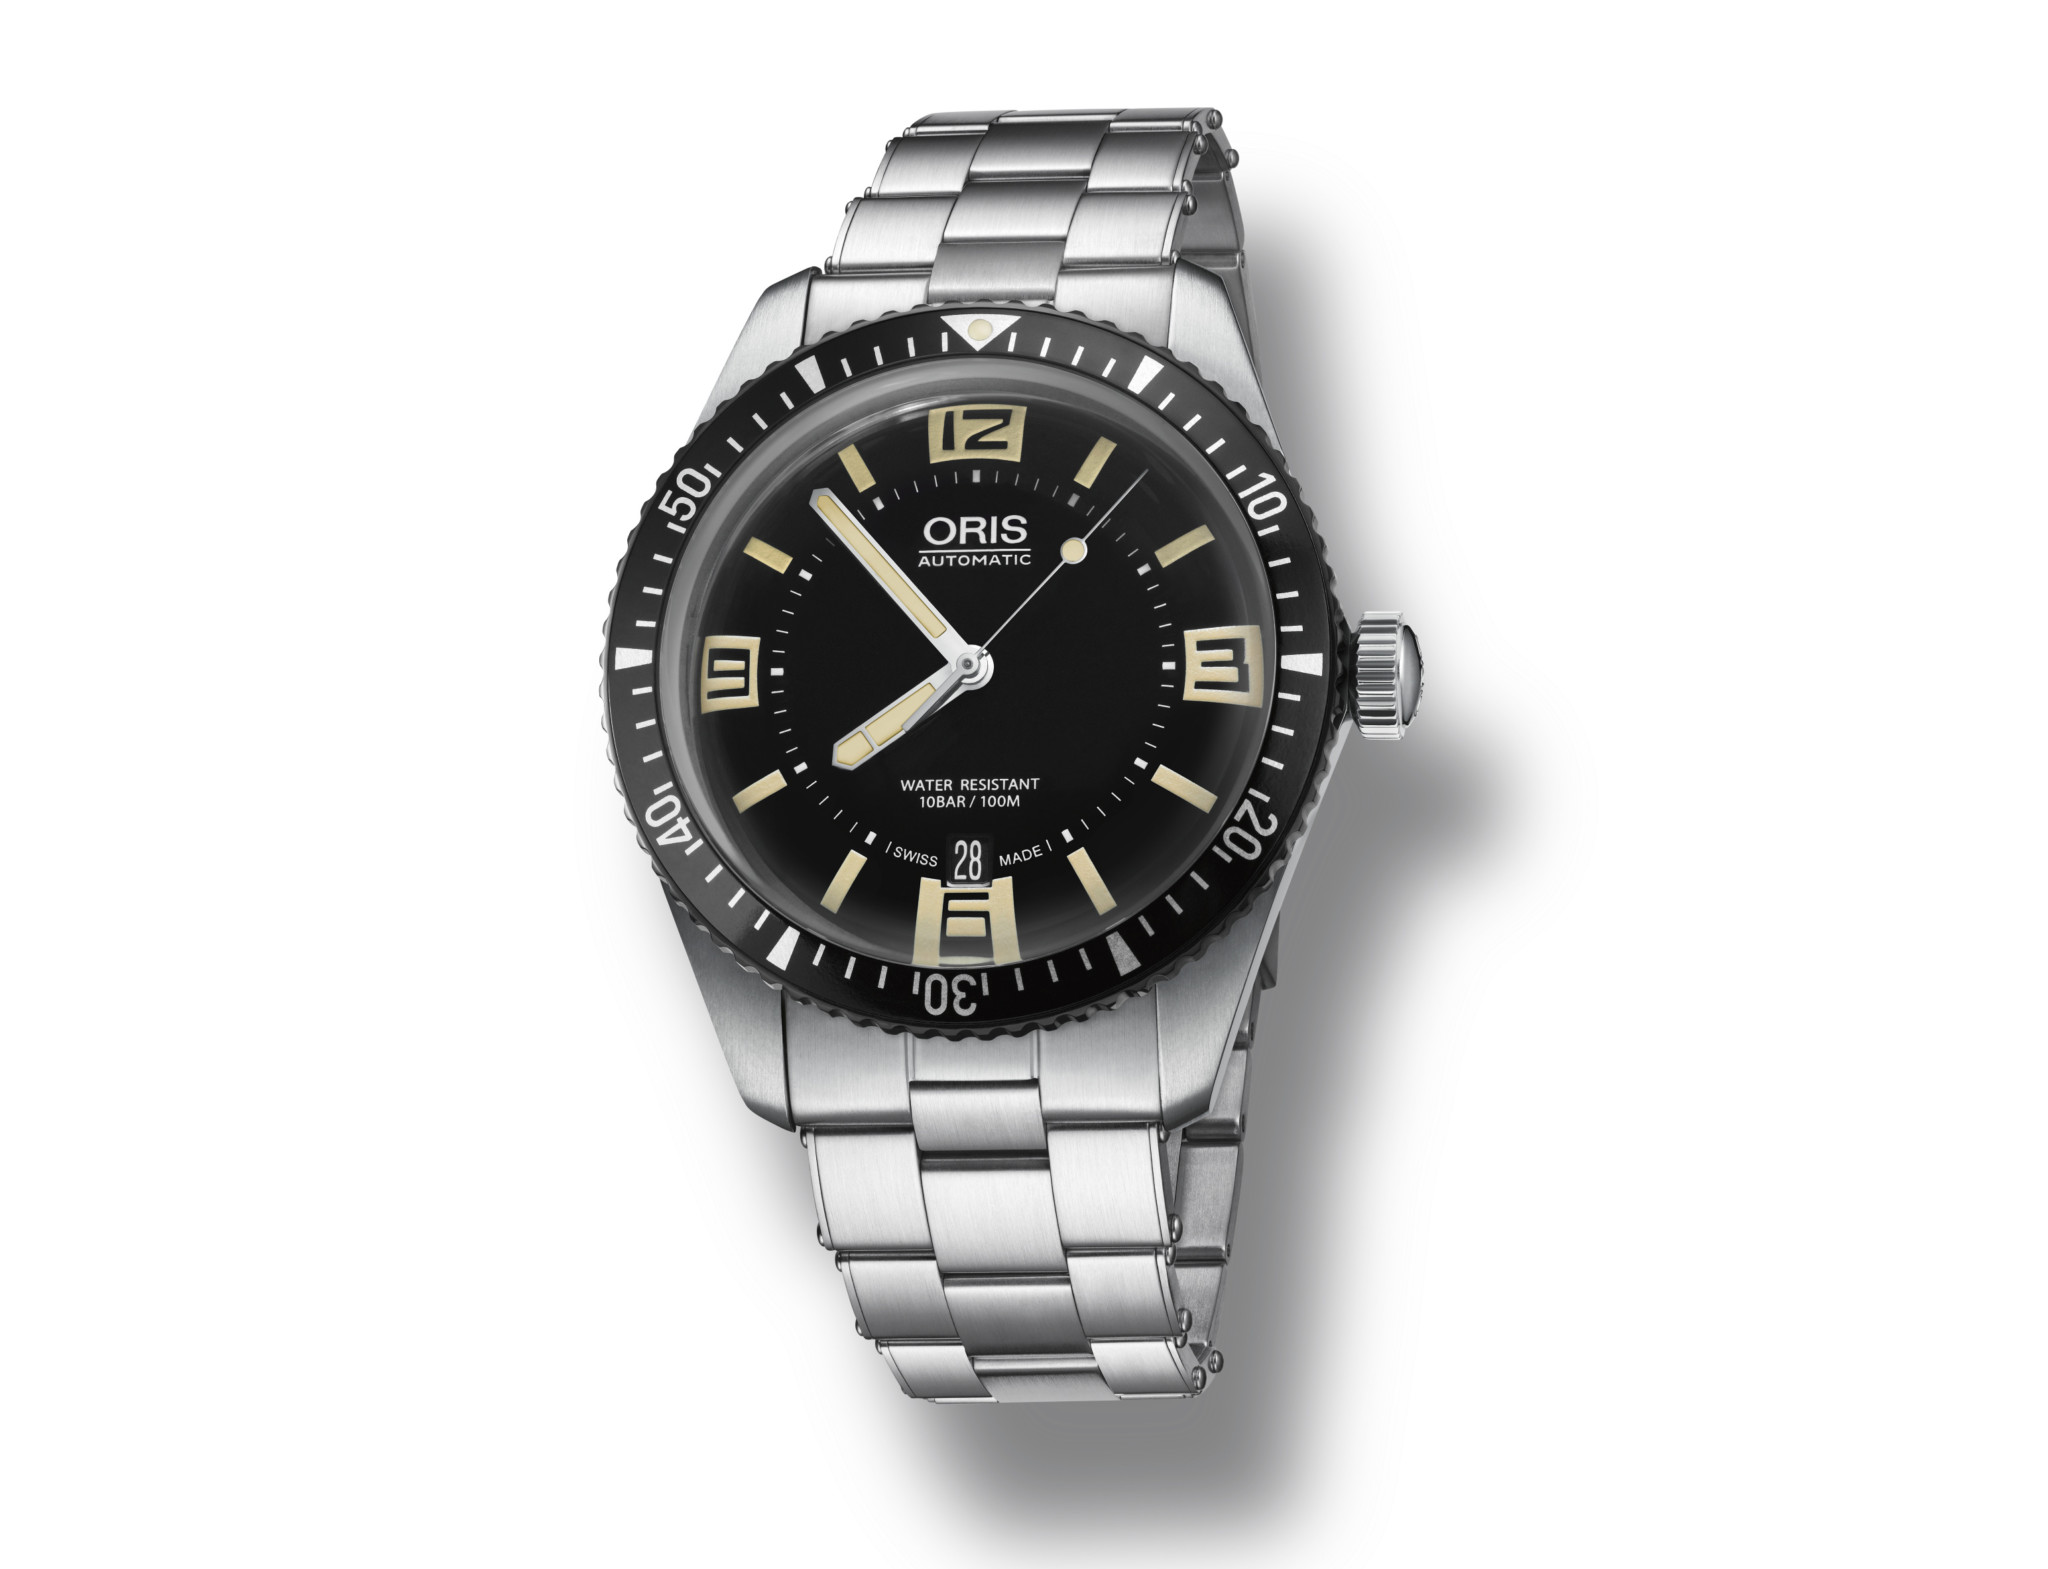 01 733 7707 4064-07 8 20 18 – Oris Divers Sixty-Five